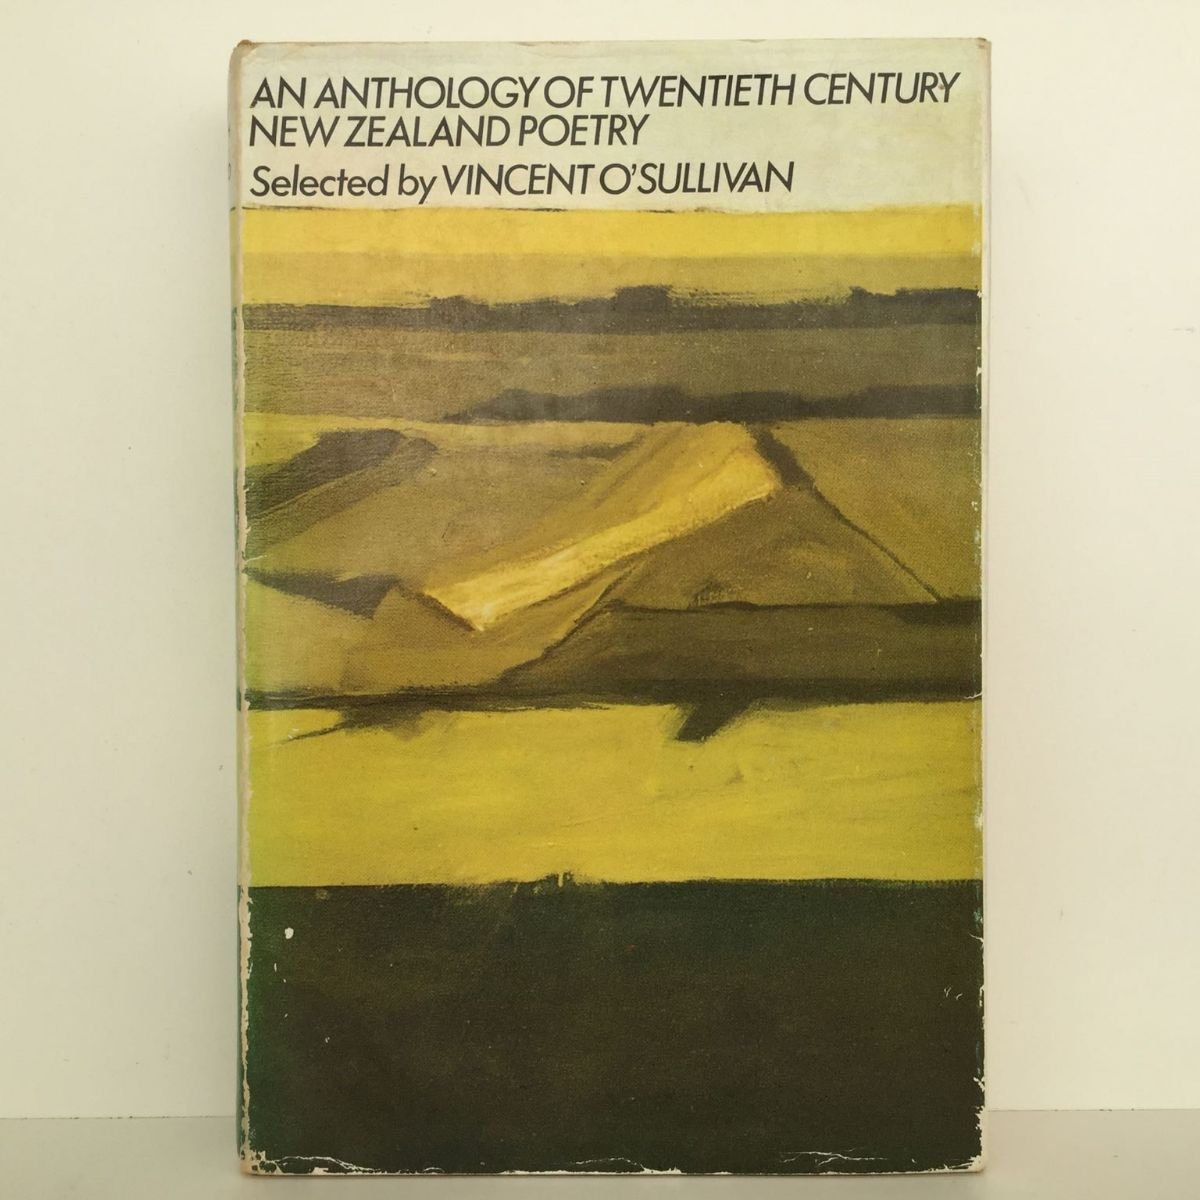 An Anthology of Twentieth Century New Zealand Poetry